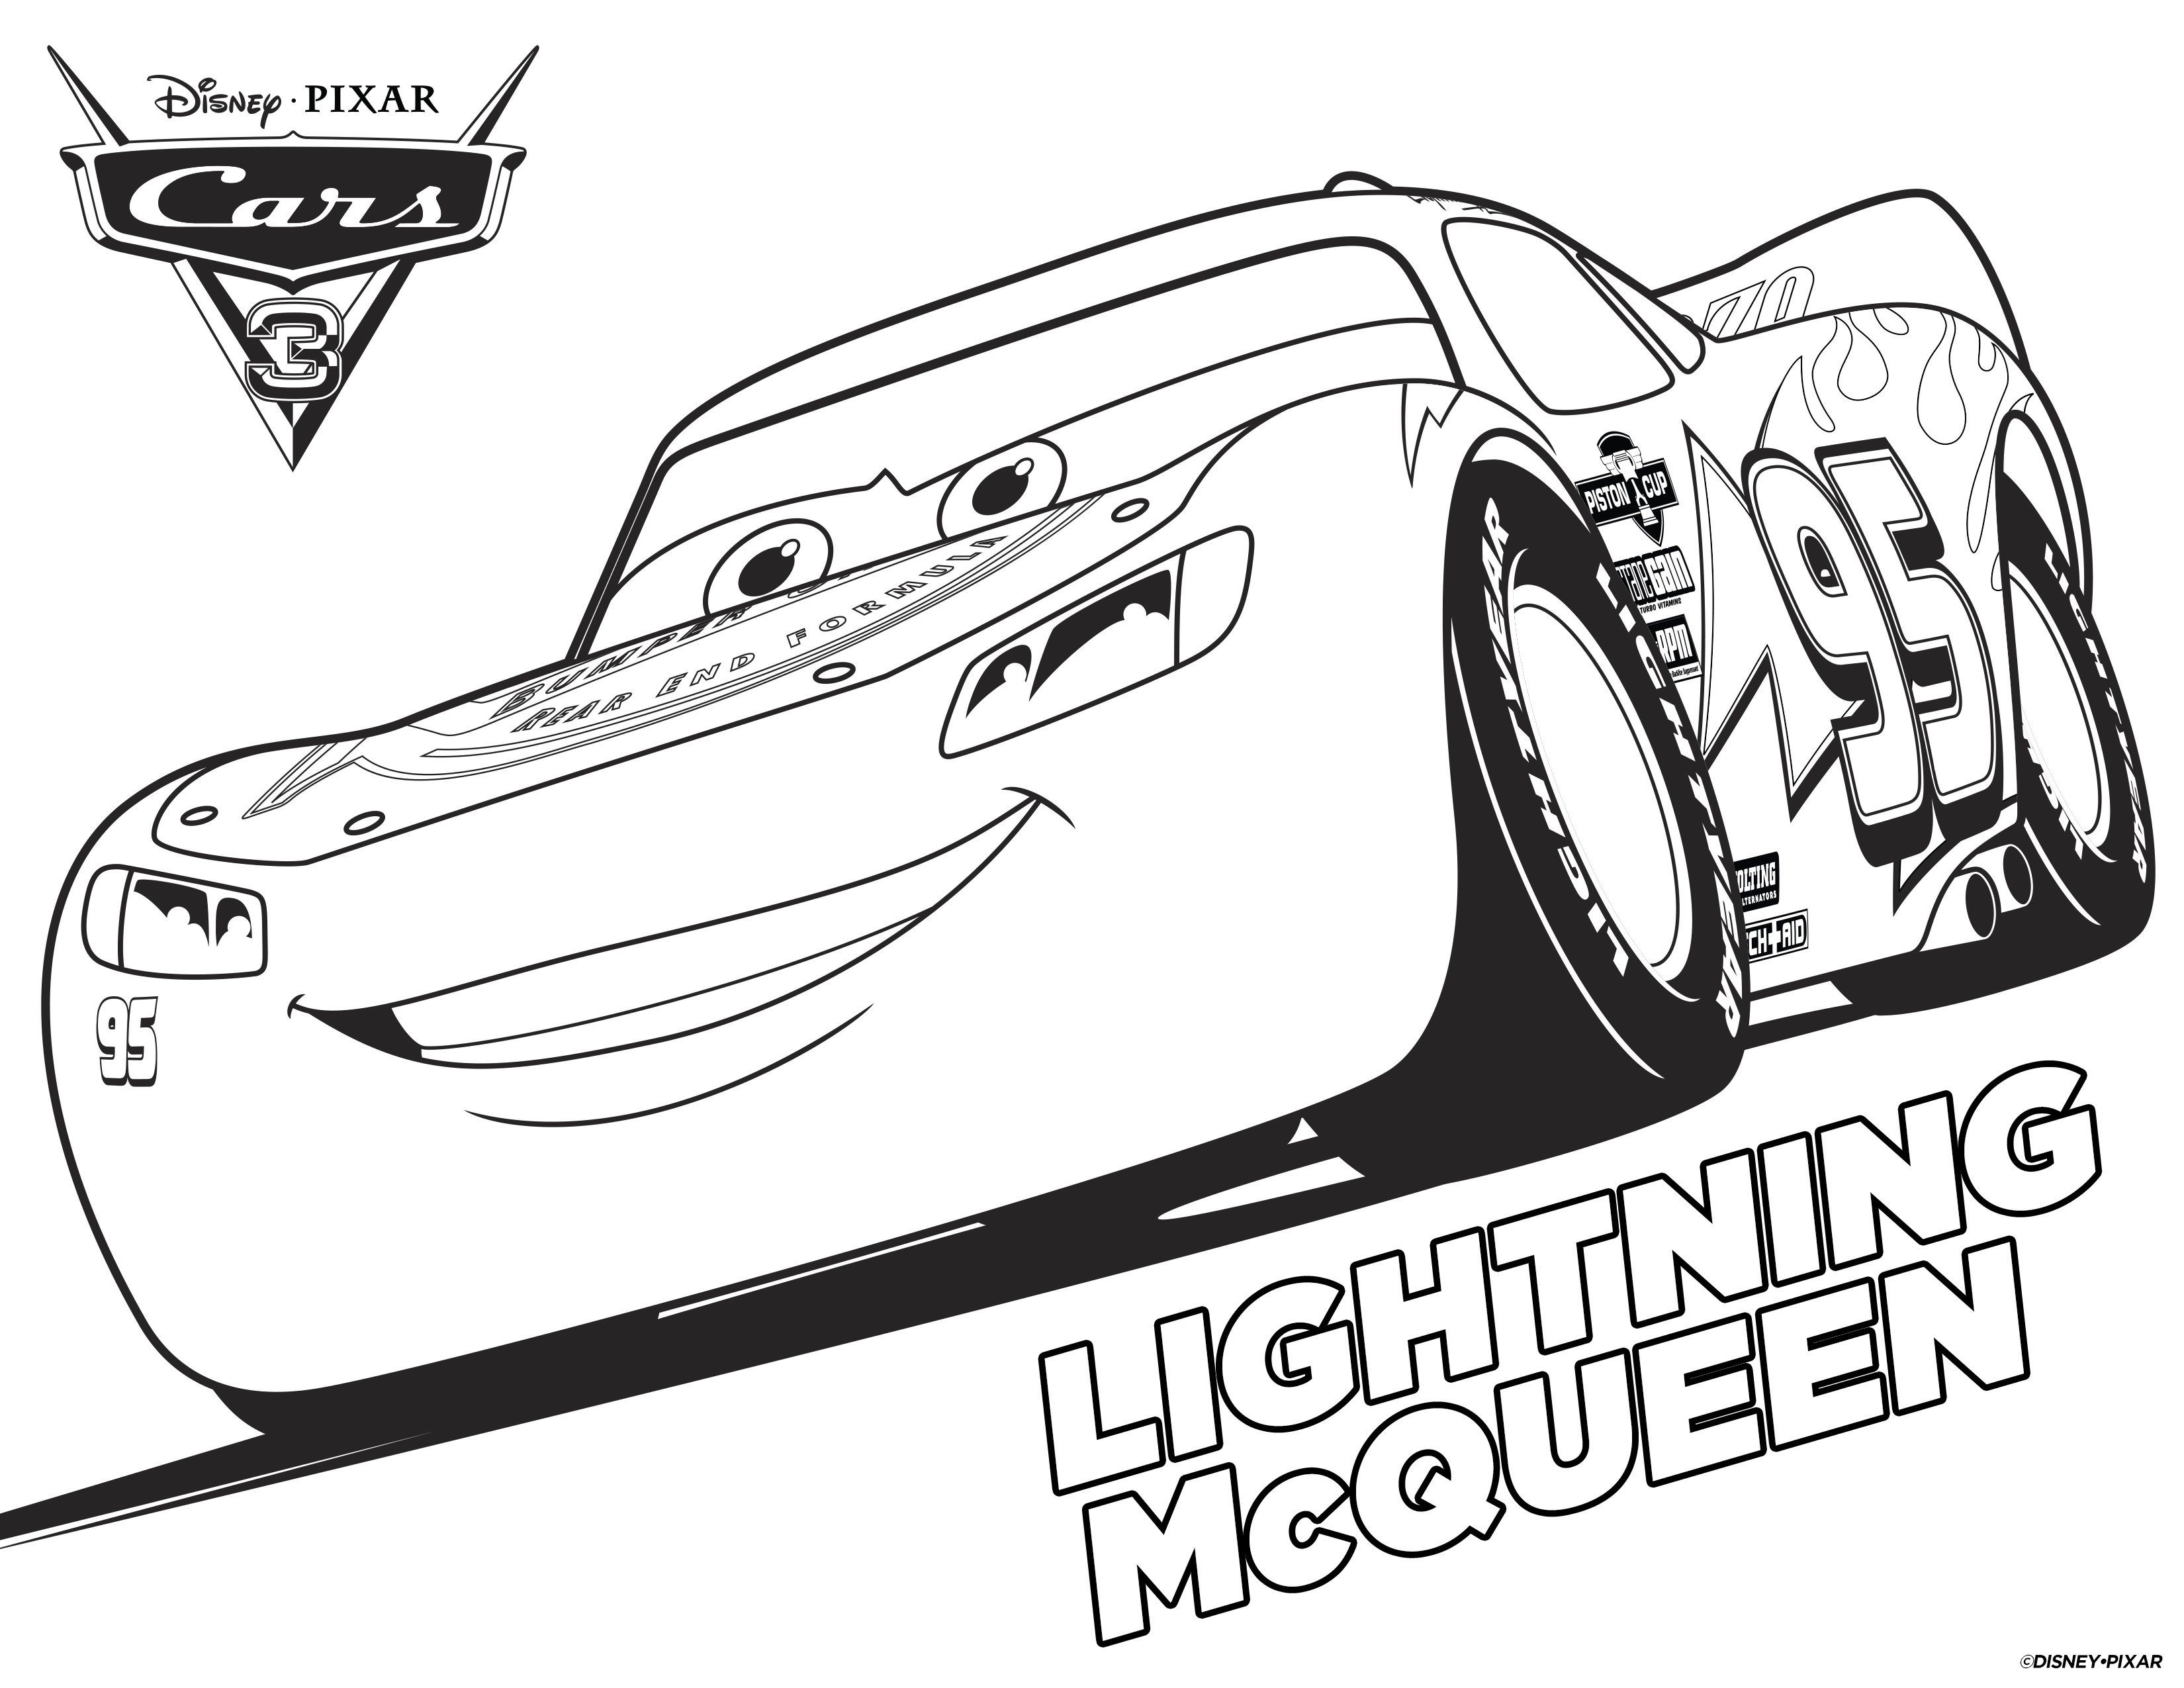 4 Disney Cars Free Printable Coloring Pages - Cars Colouring Pages Printable Free